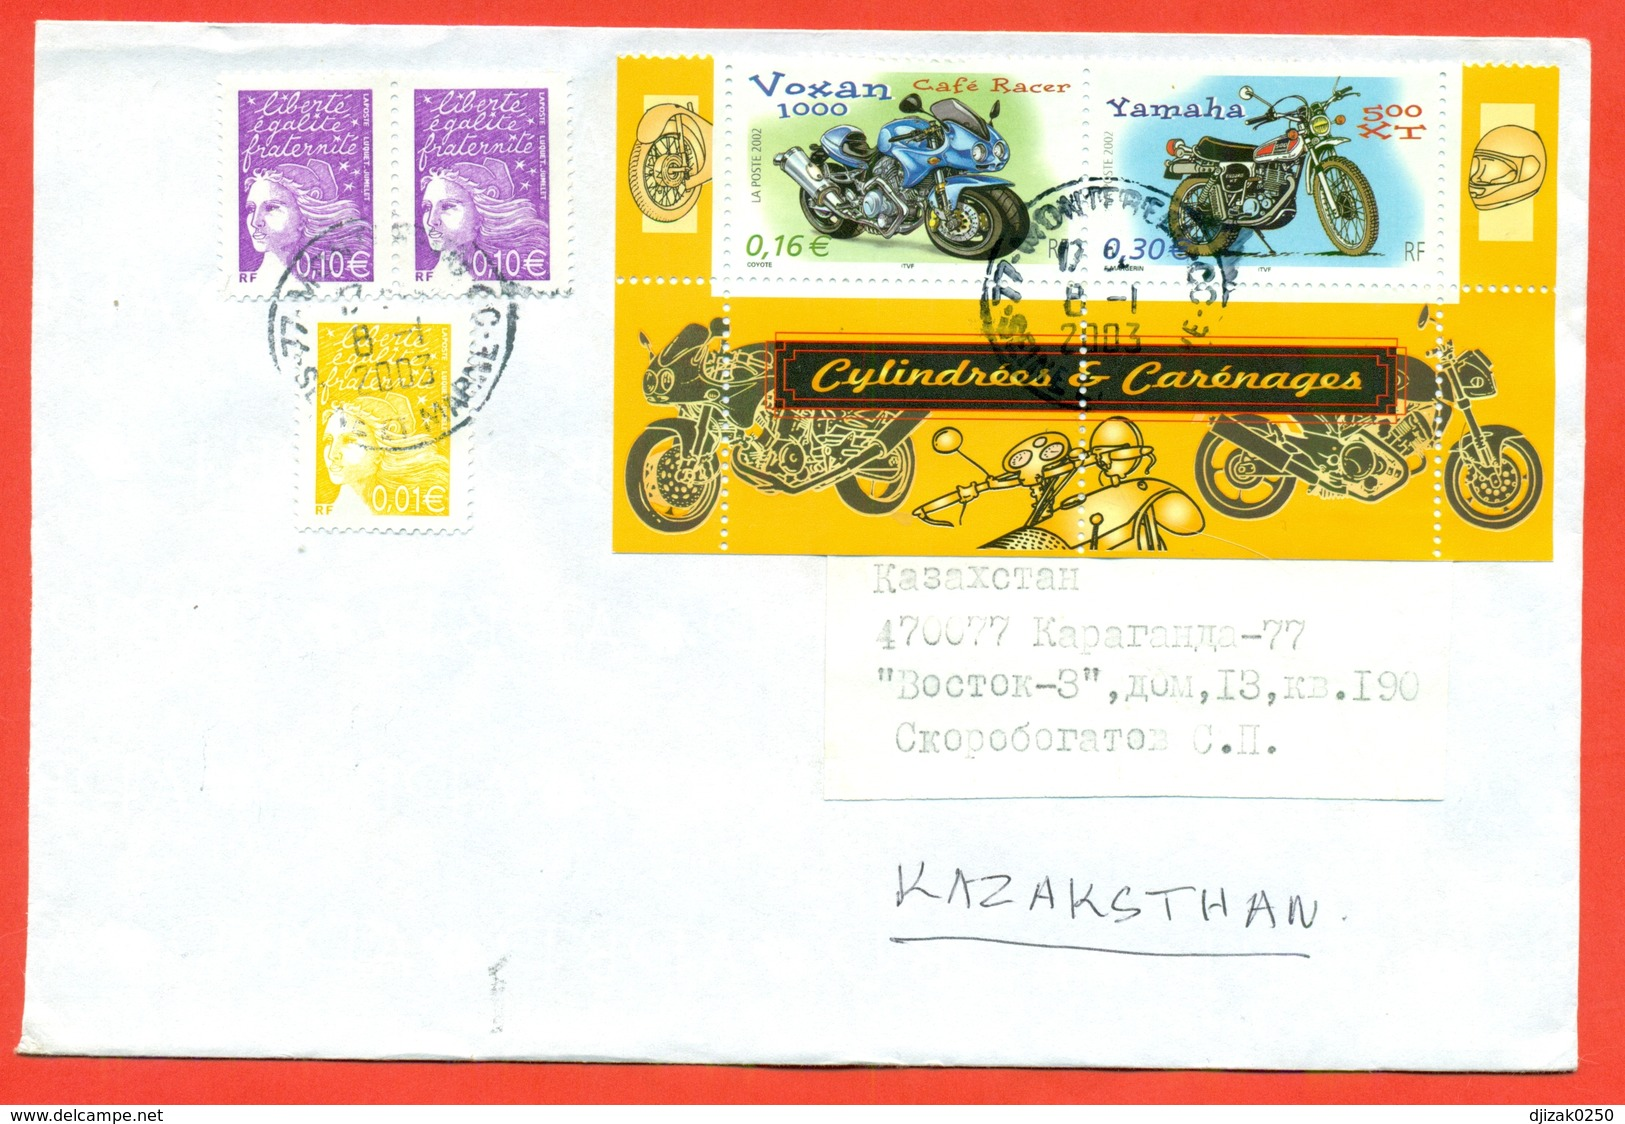 France 2003. Motorcycles. The Envelope Is Really Past Mail. - France